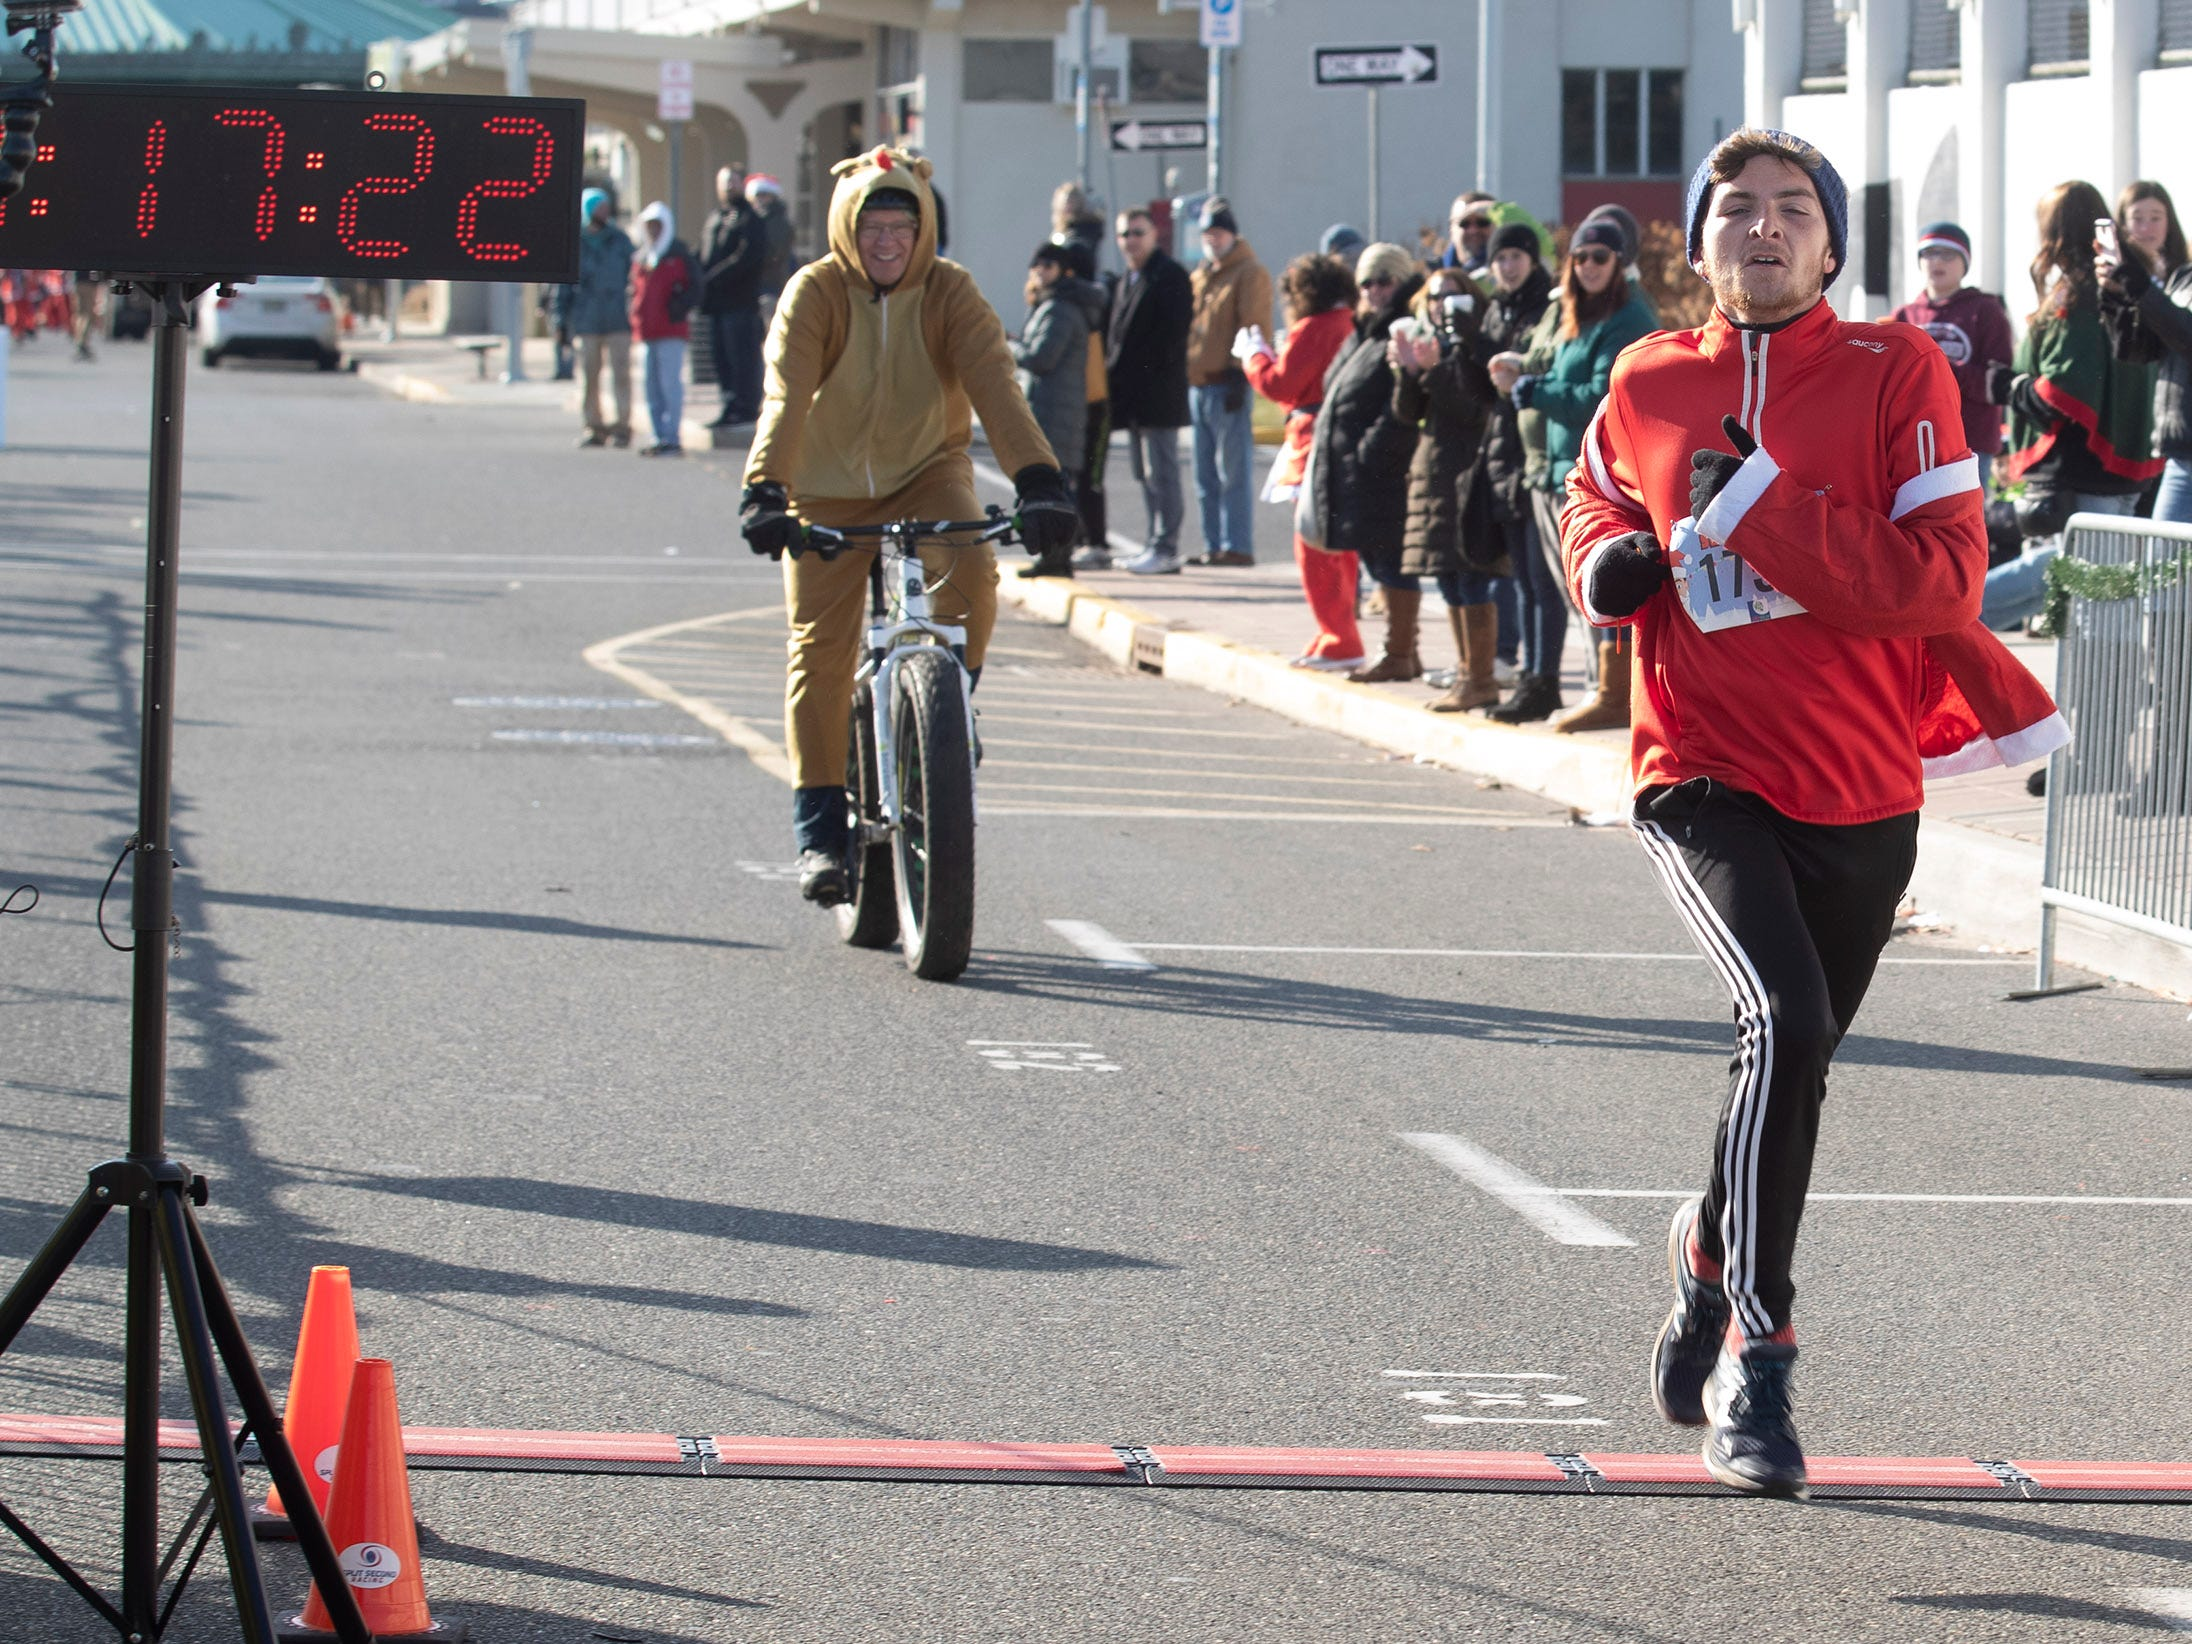 Kevin Knoetig takes first place in Santa Run. Runners brave the cold to participate in the annual Santa Run 5K in Asbury Park on December 8, 2018.